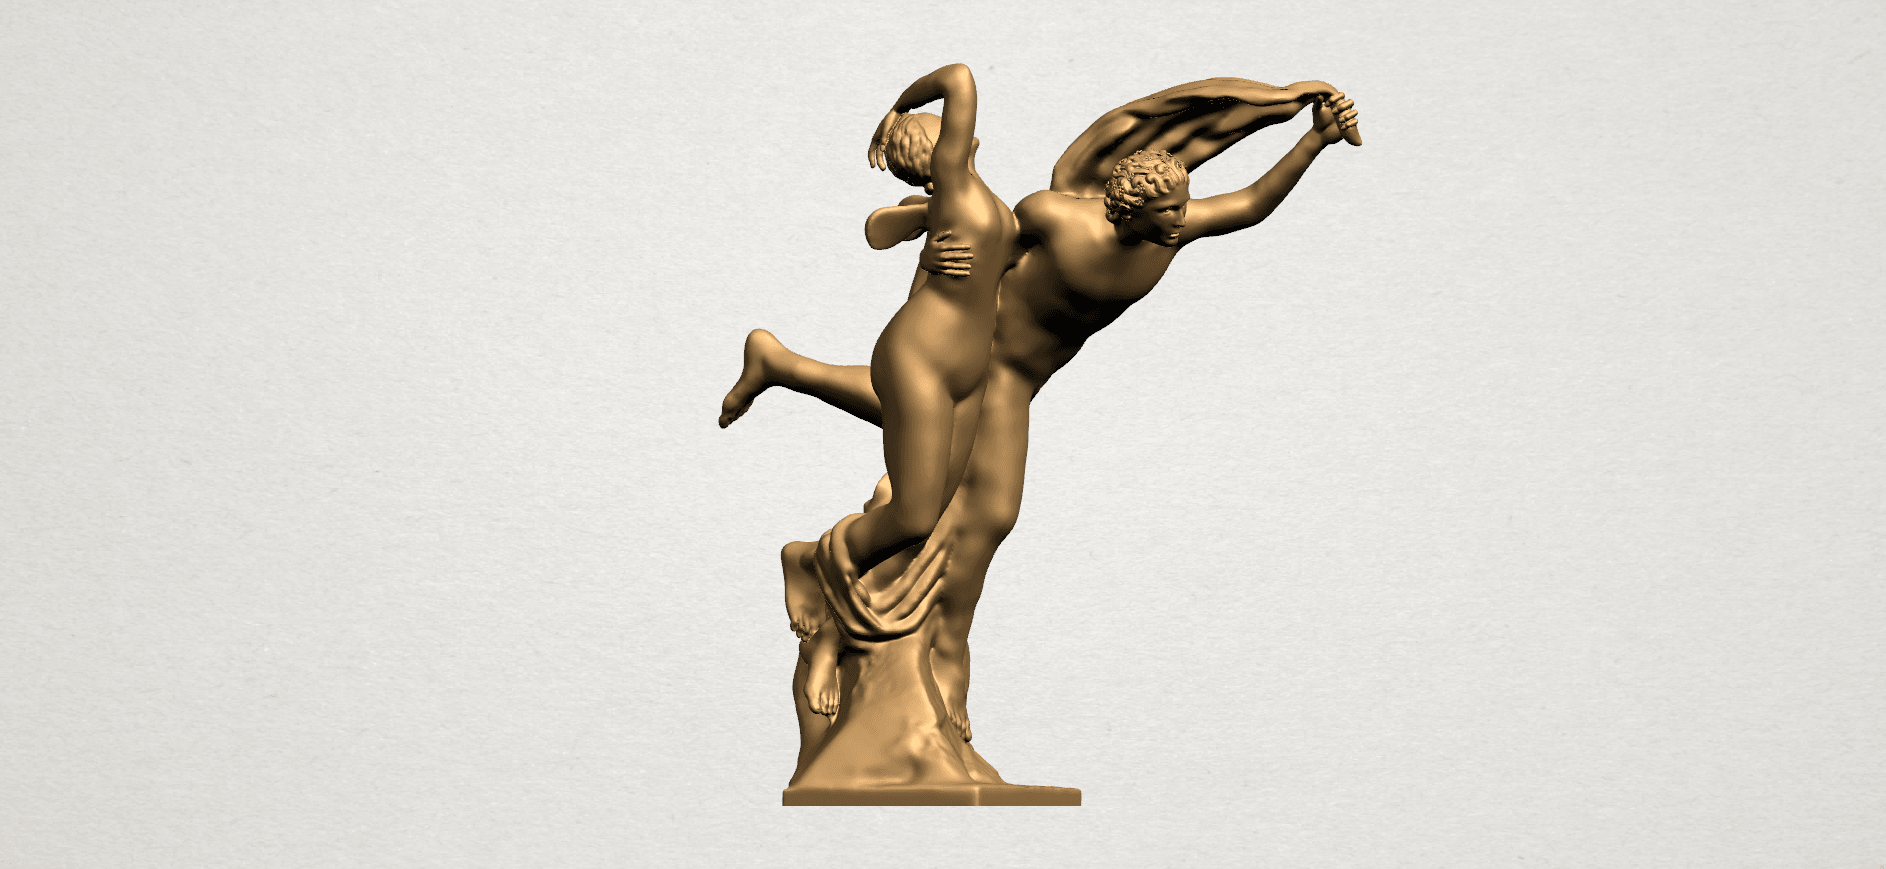 Cupid and Psyche - A08.png Download free STL file Cupid and Psyche • 3D printing template, GeorgesNikkei